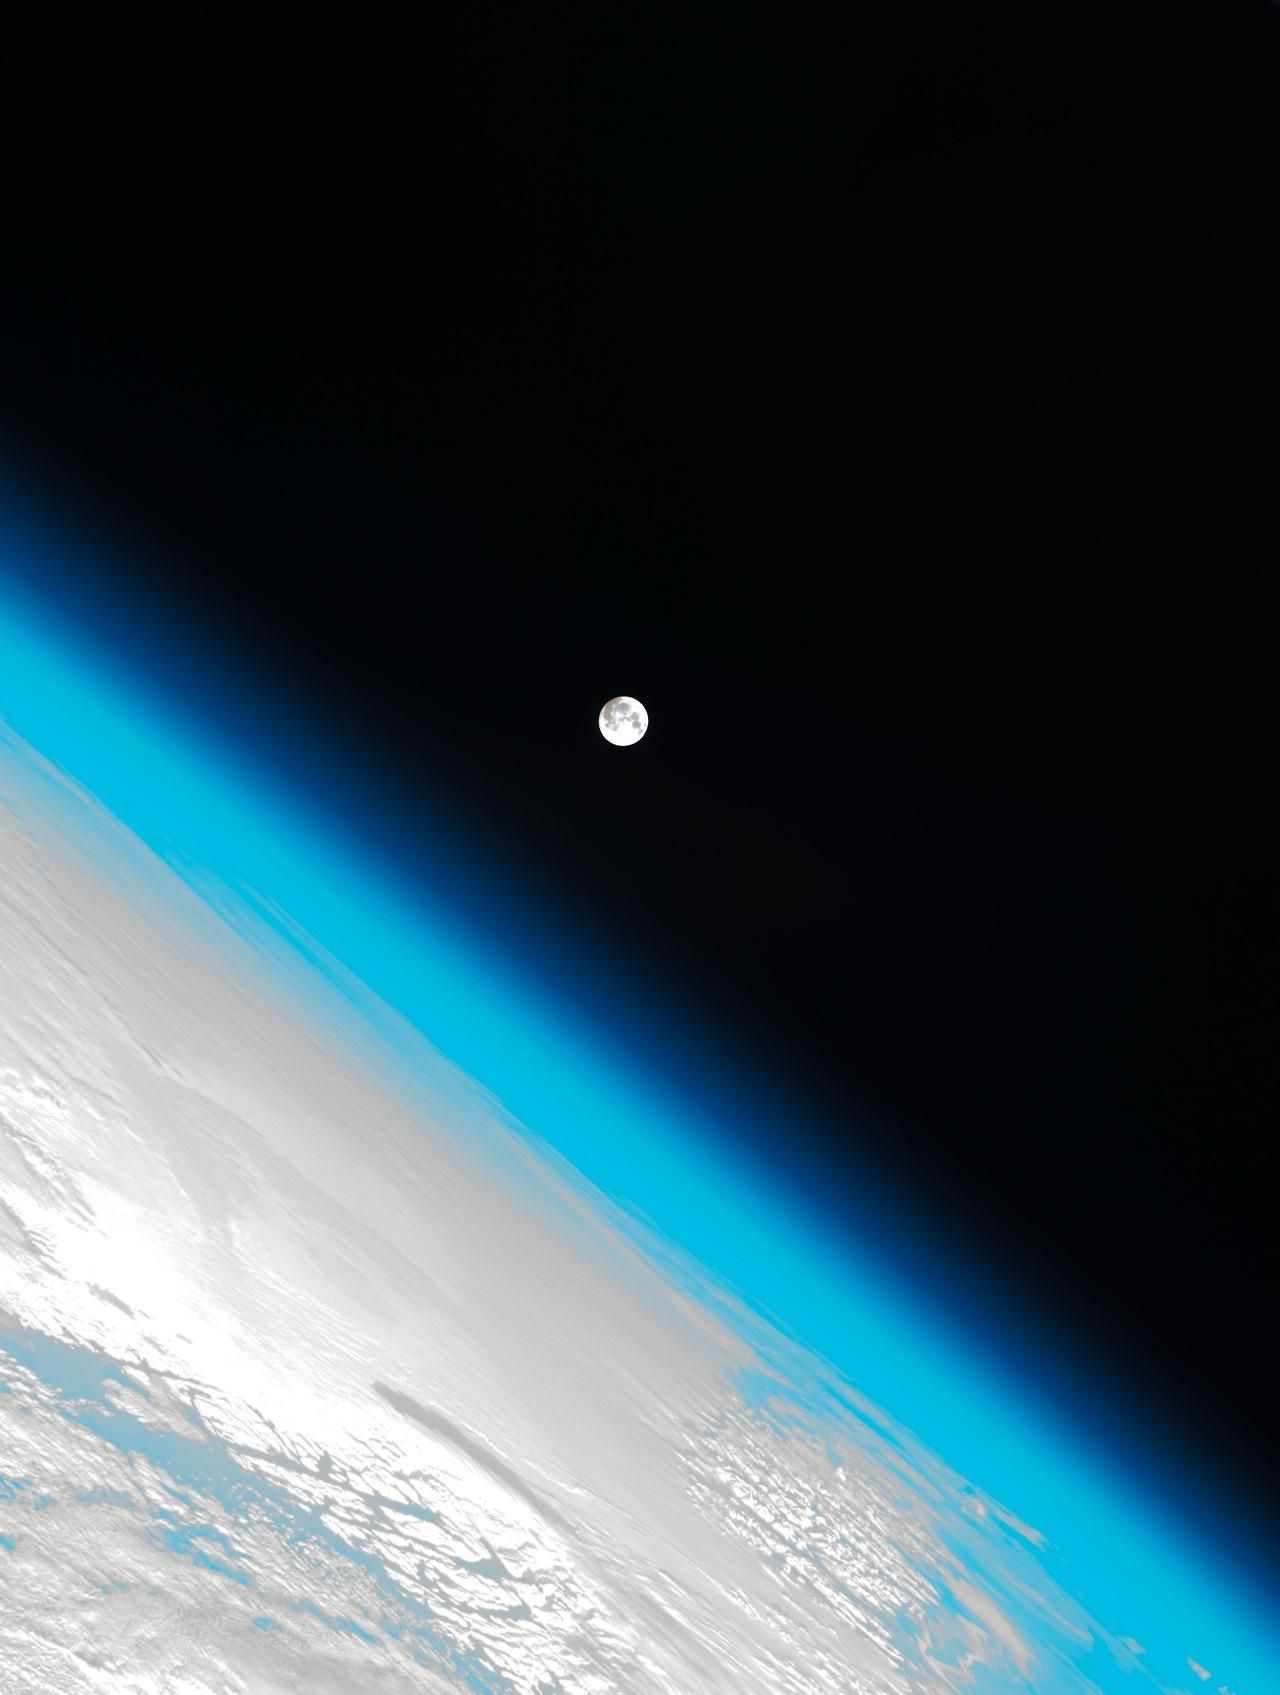 Photo Of The Earth S Atmosphere And The Moon Shot By The